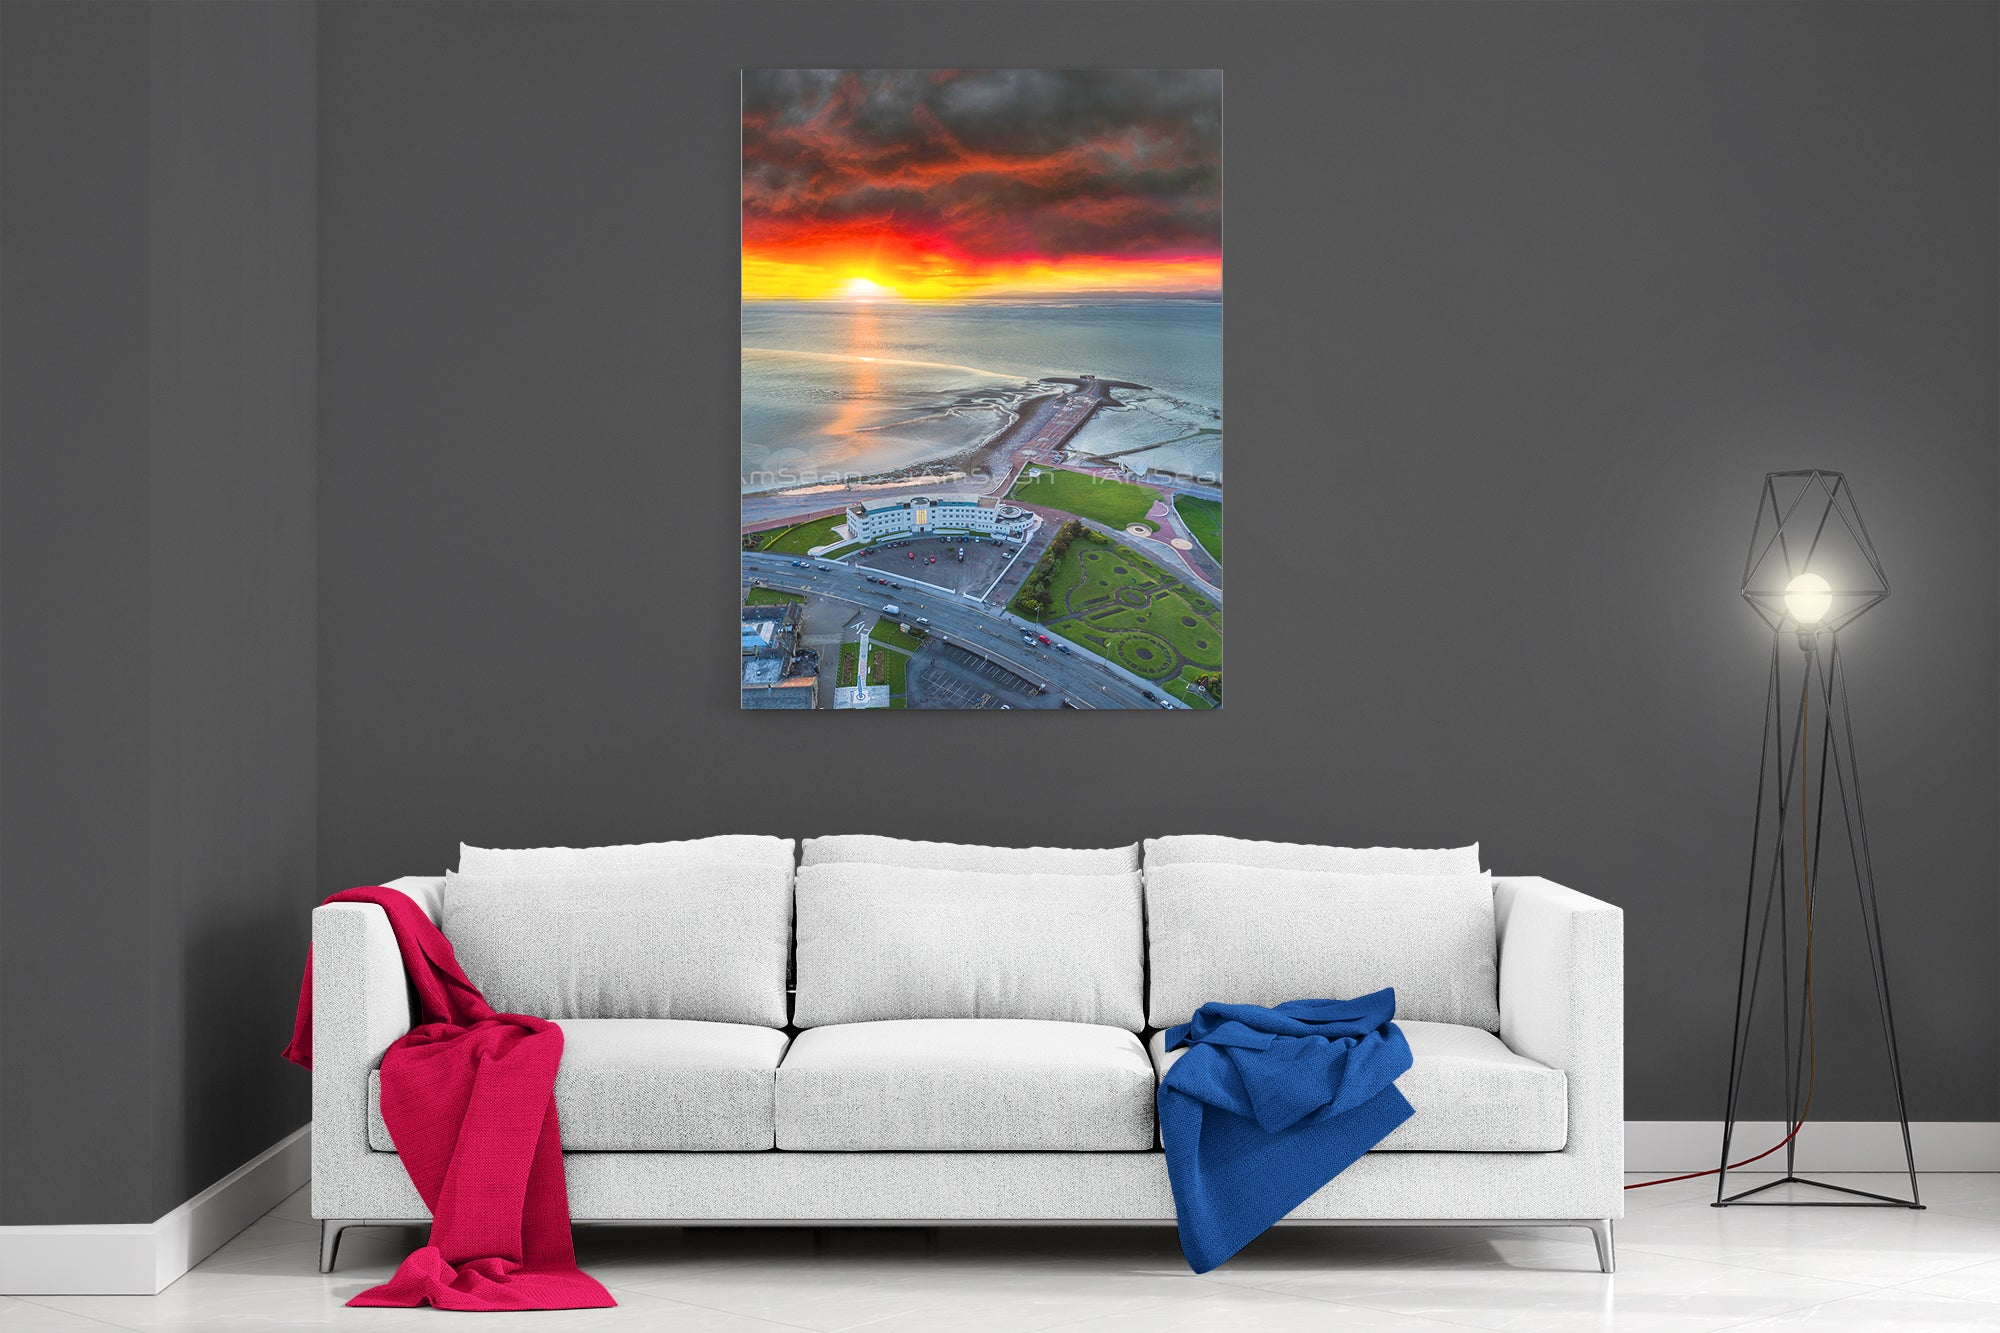 The Midland Hotel Sunset - Poster Print